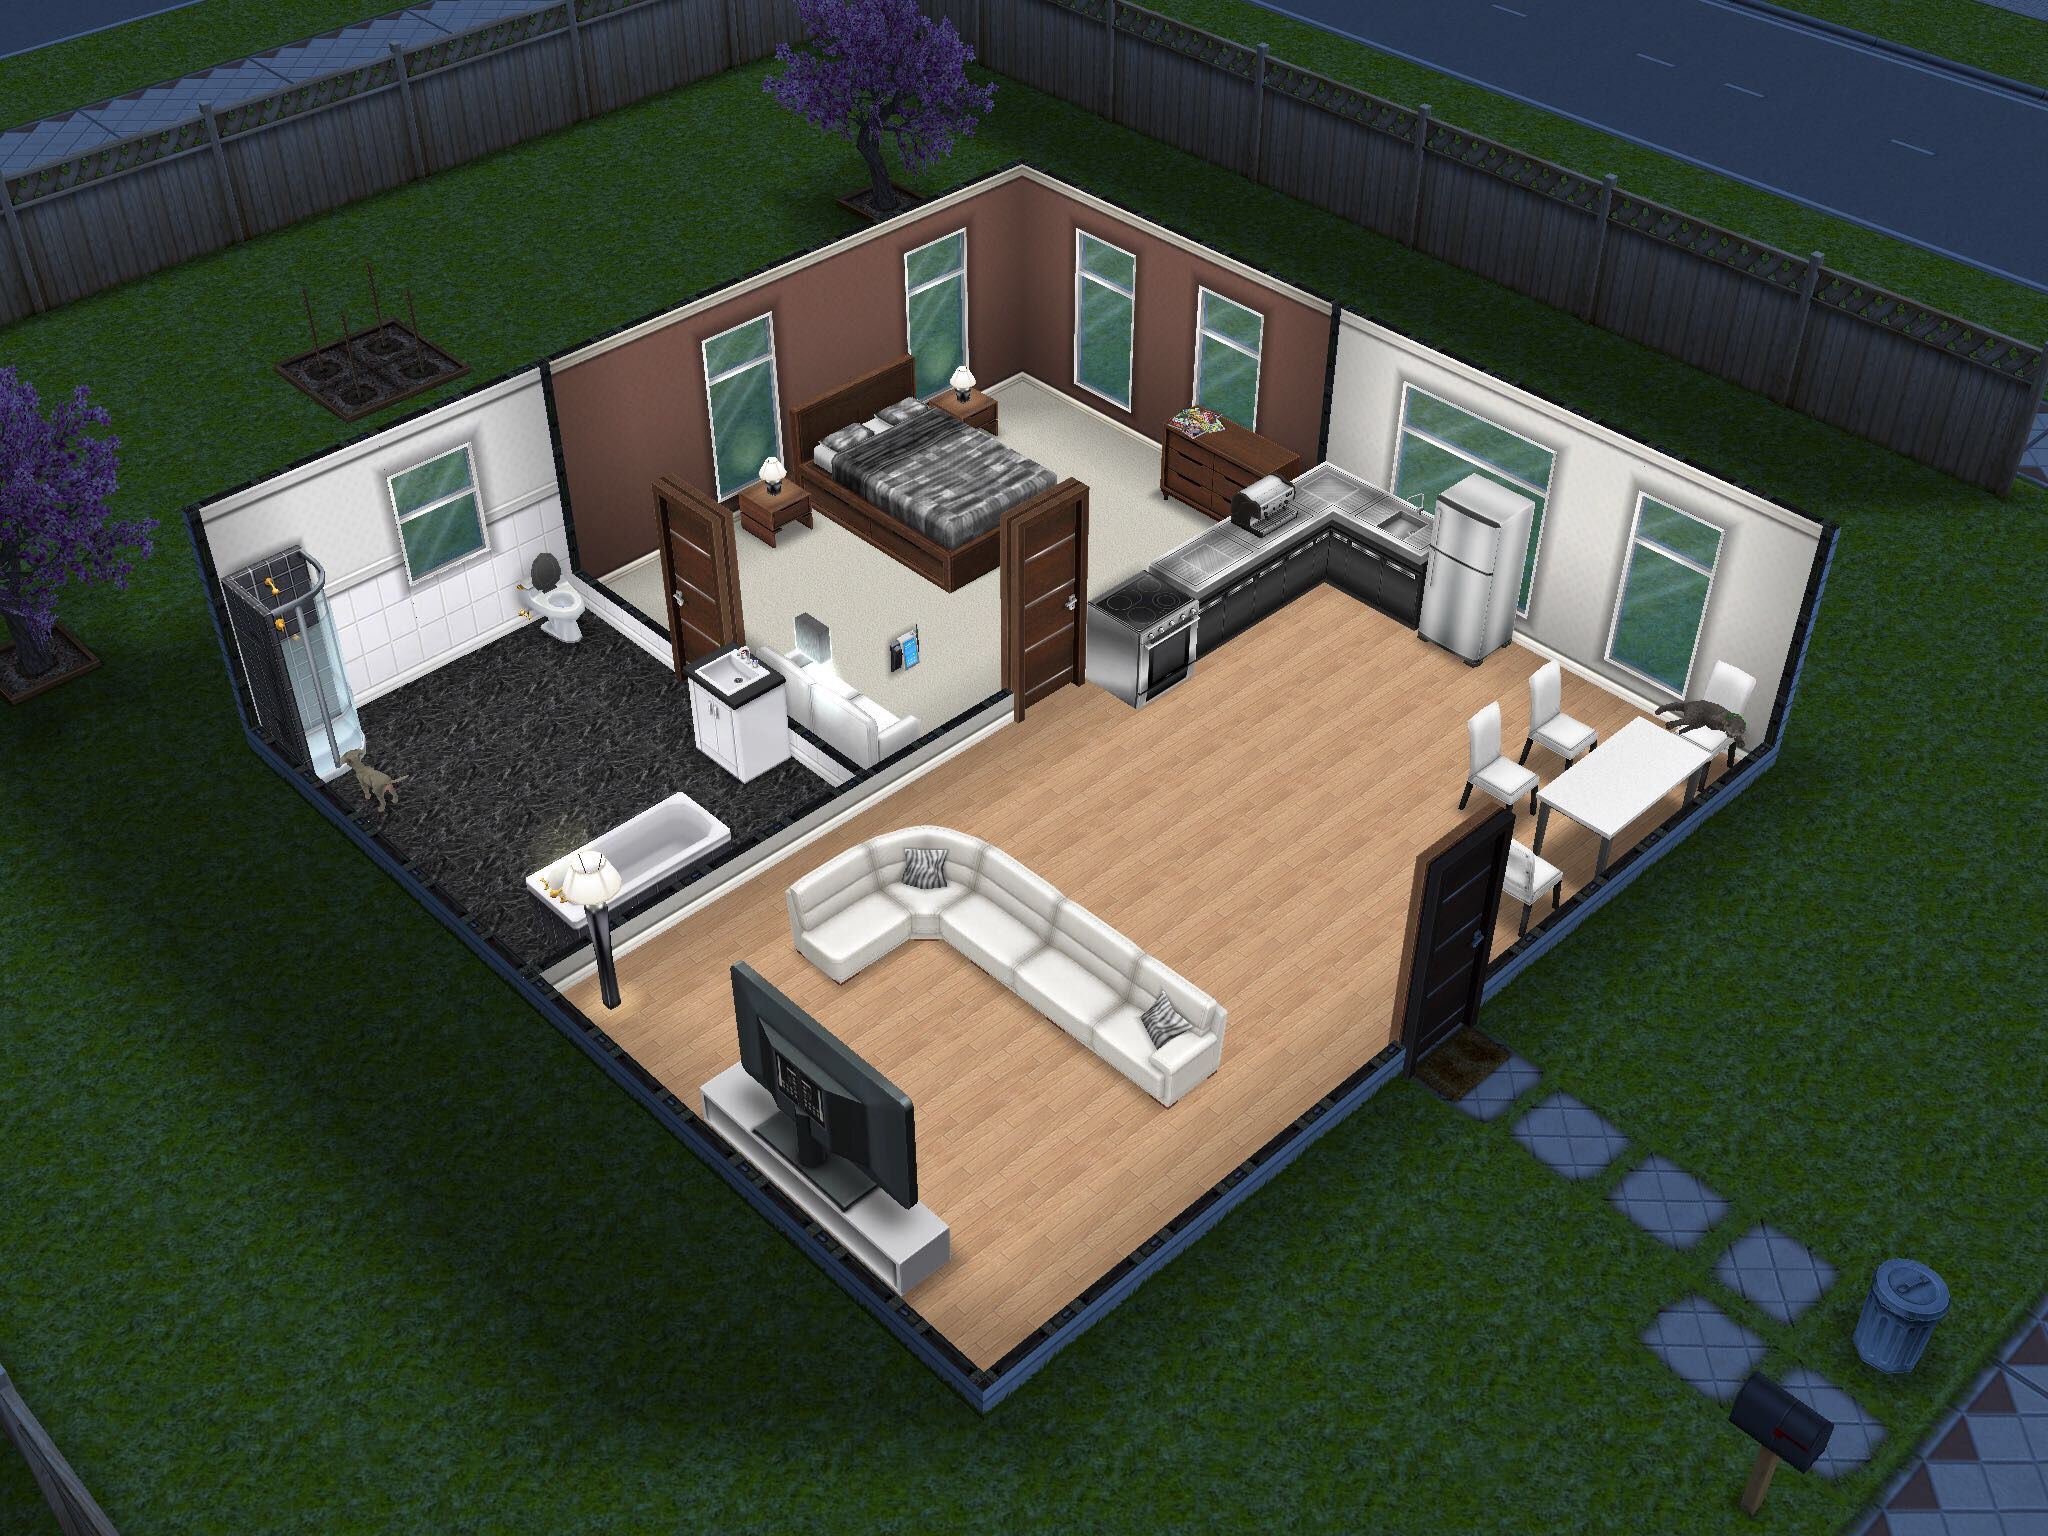 Small and simple sims freeplay house houses layout layouts also rh pinterest